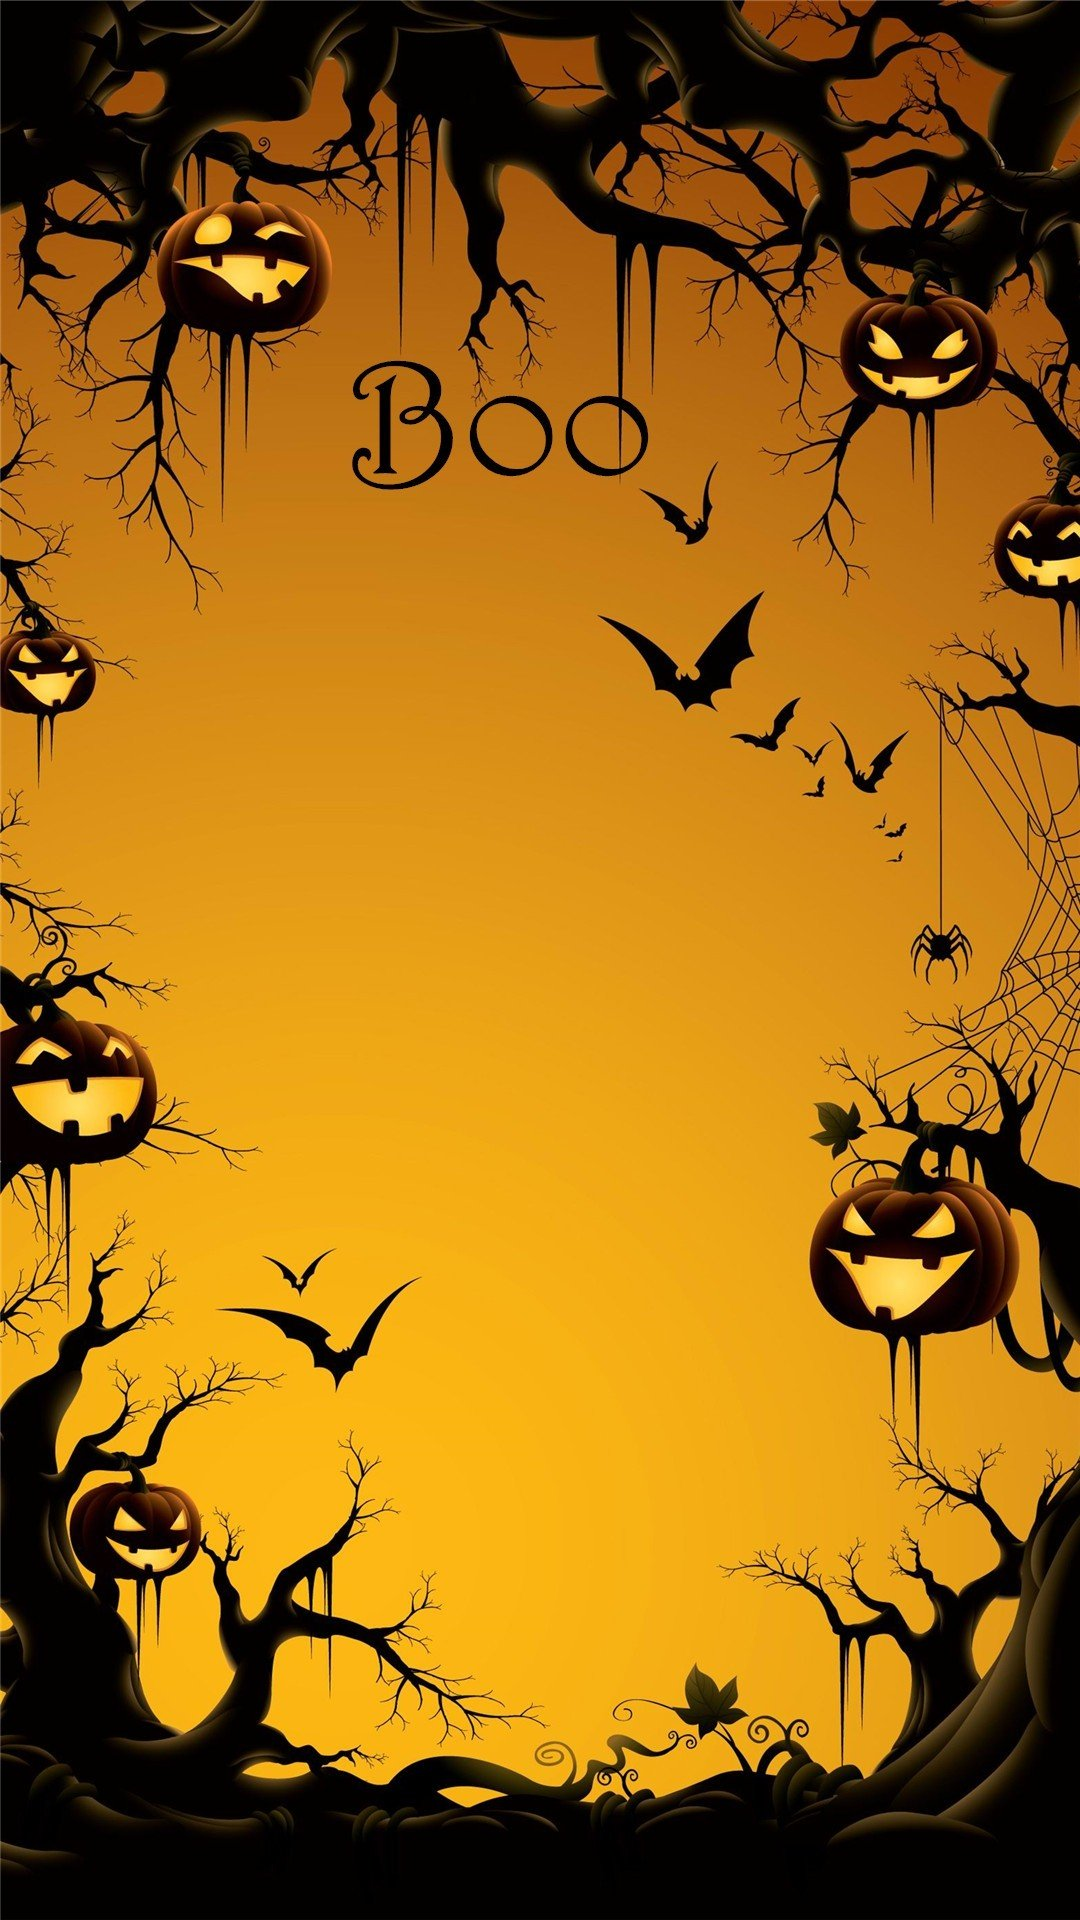 halloween wallpaper for iphone 6 wallpapersafari